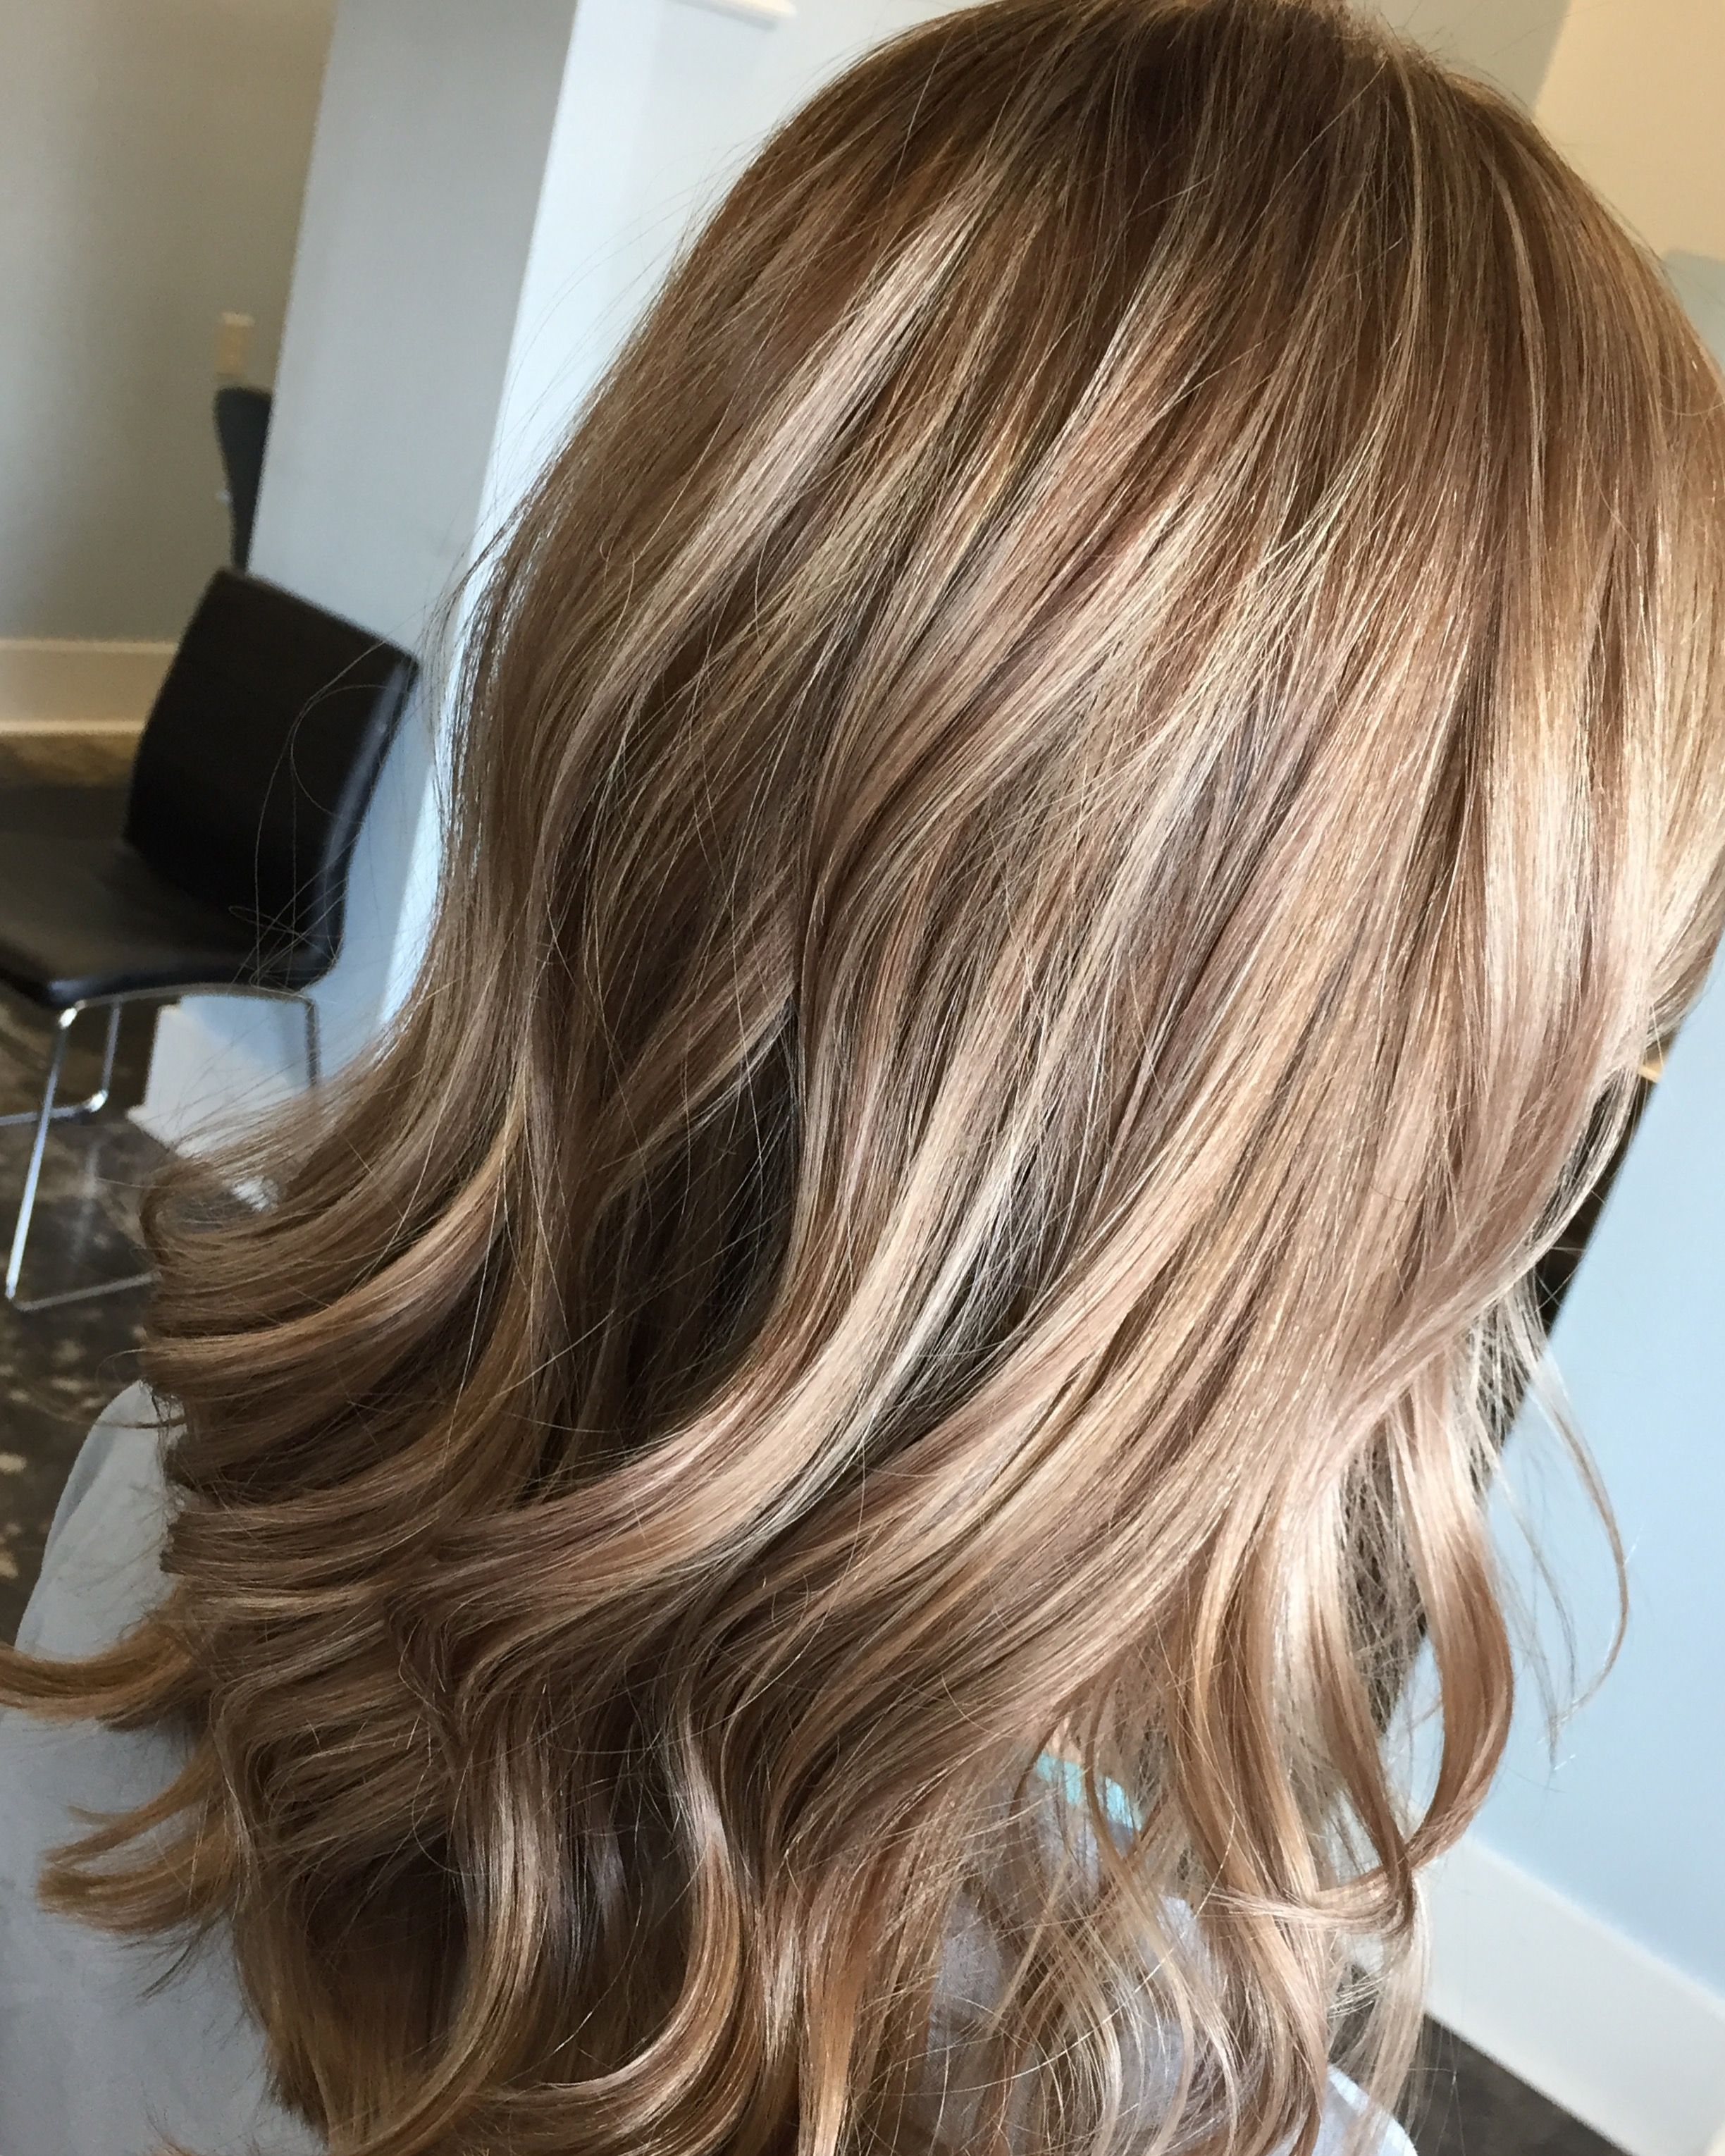 Blonde Foiled Highlights With Level 8 Base Paulmitchell Summerhair